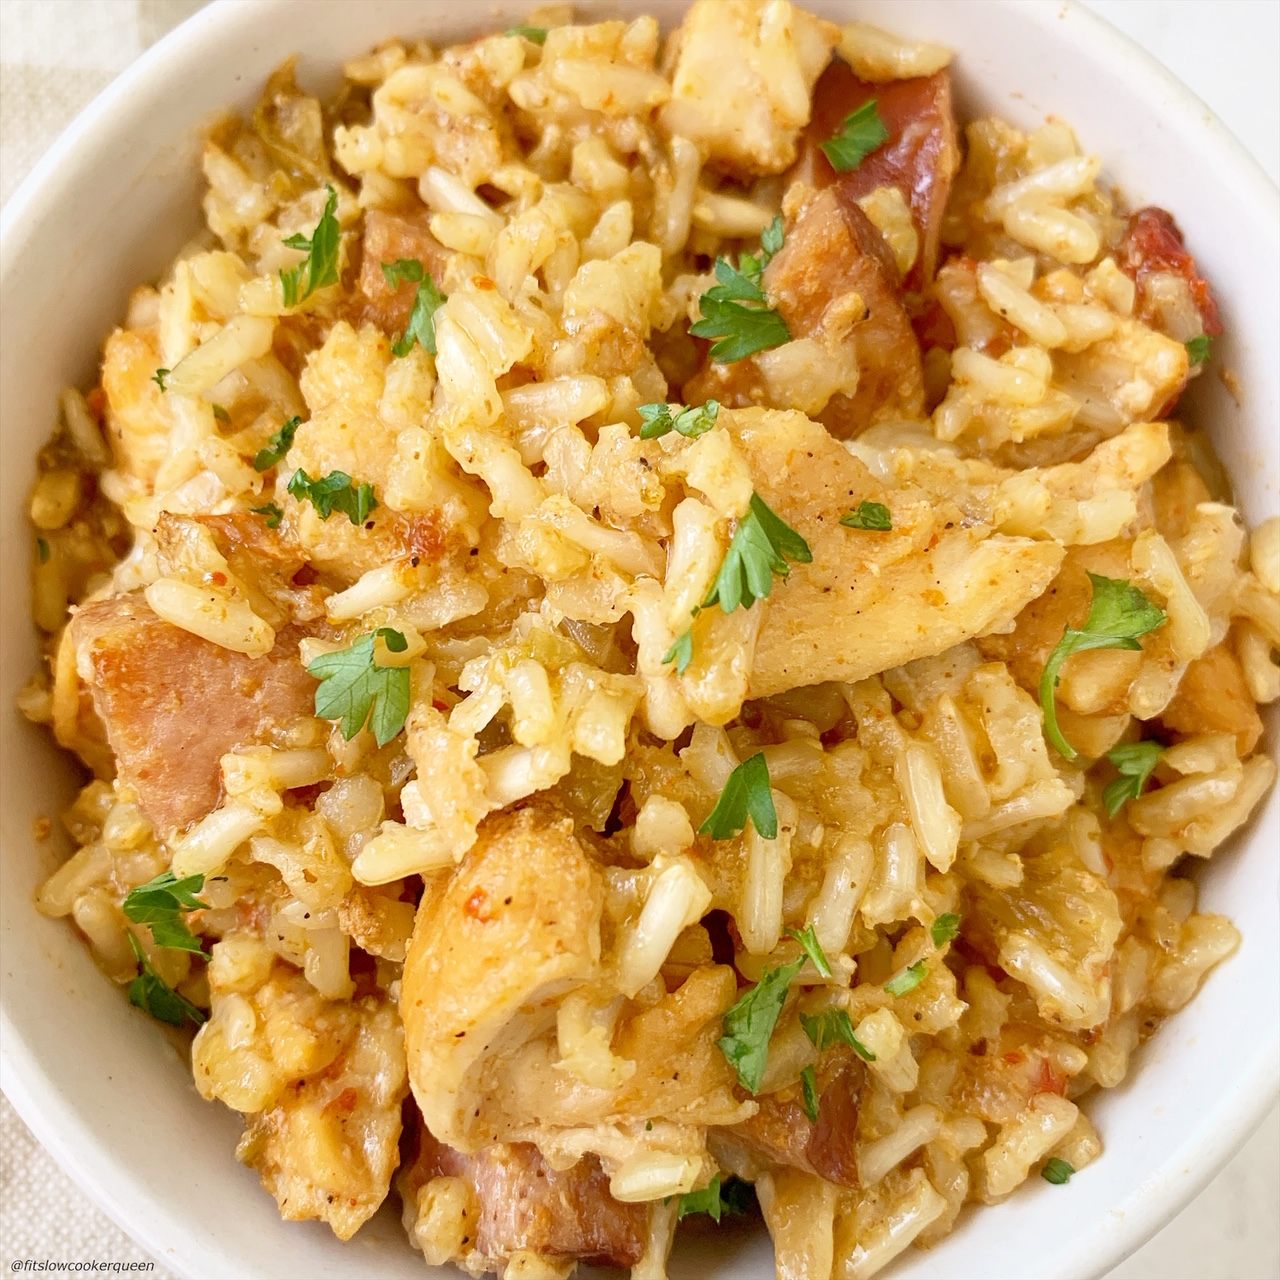 close up pic of creole rice w/chicken & sausage in a bowl